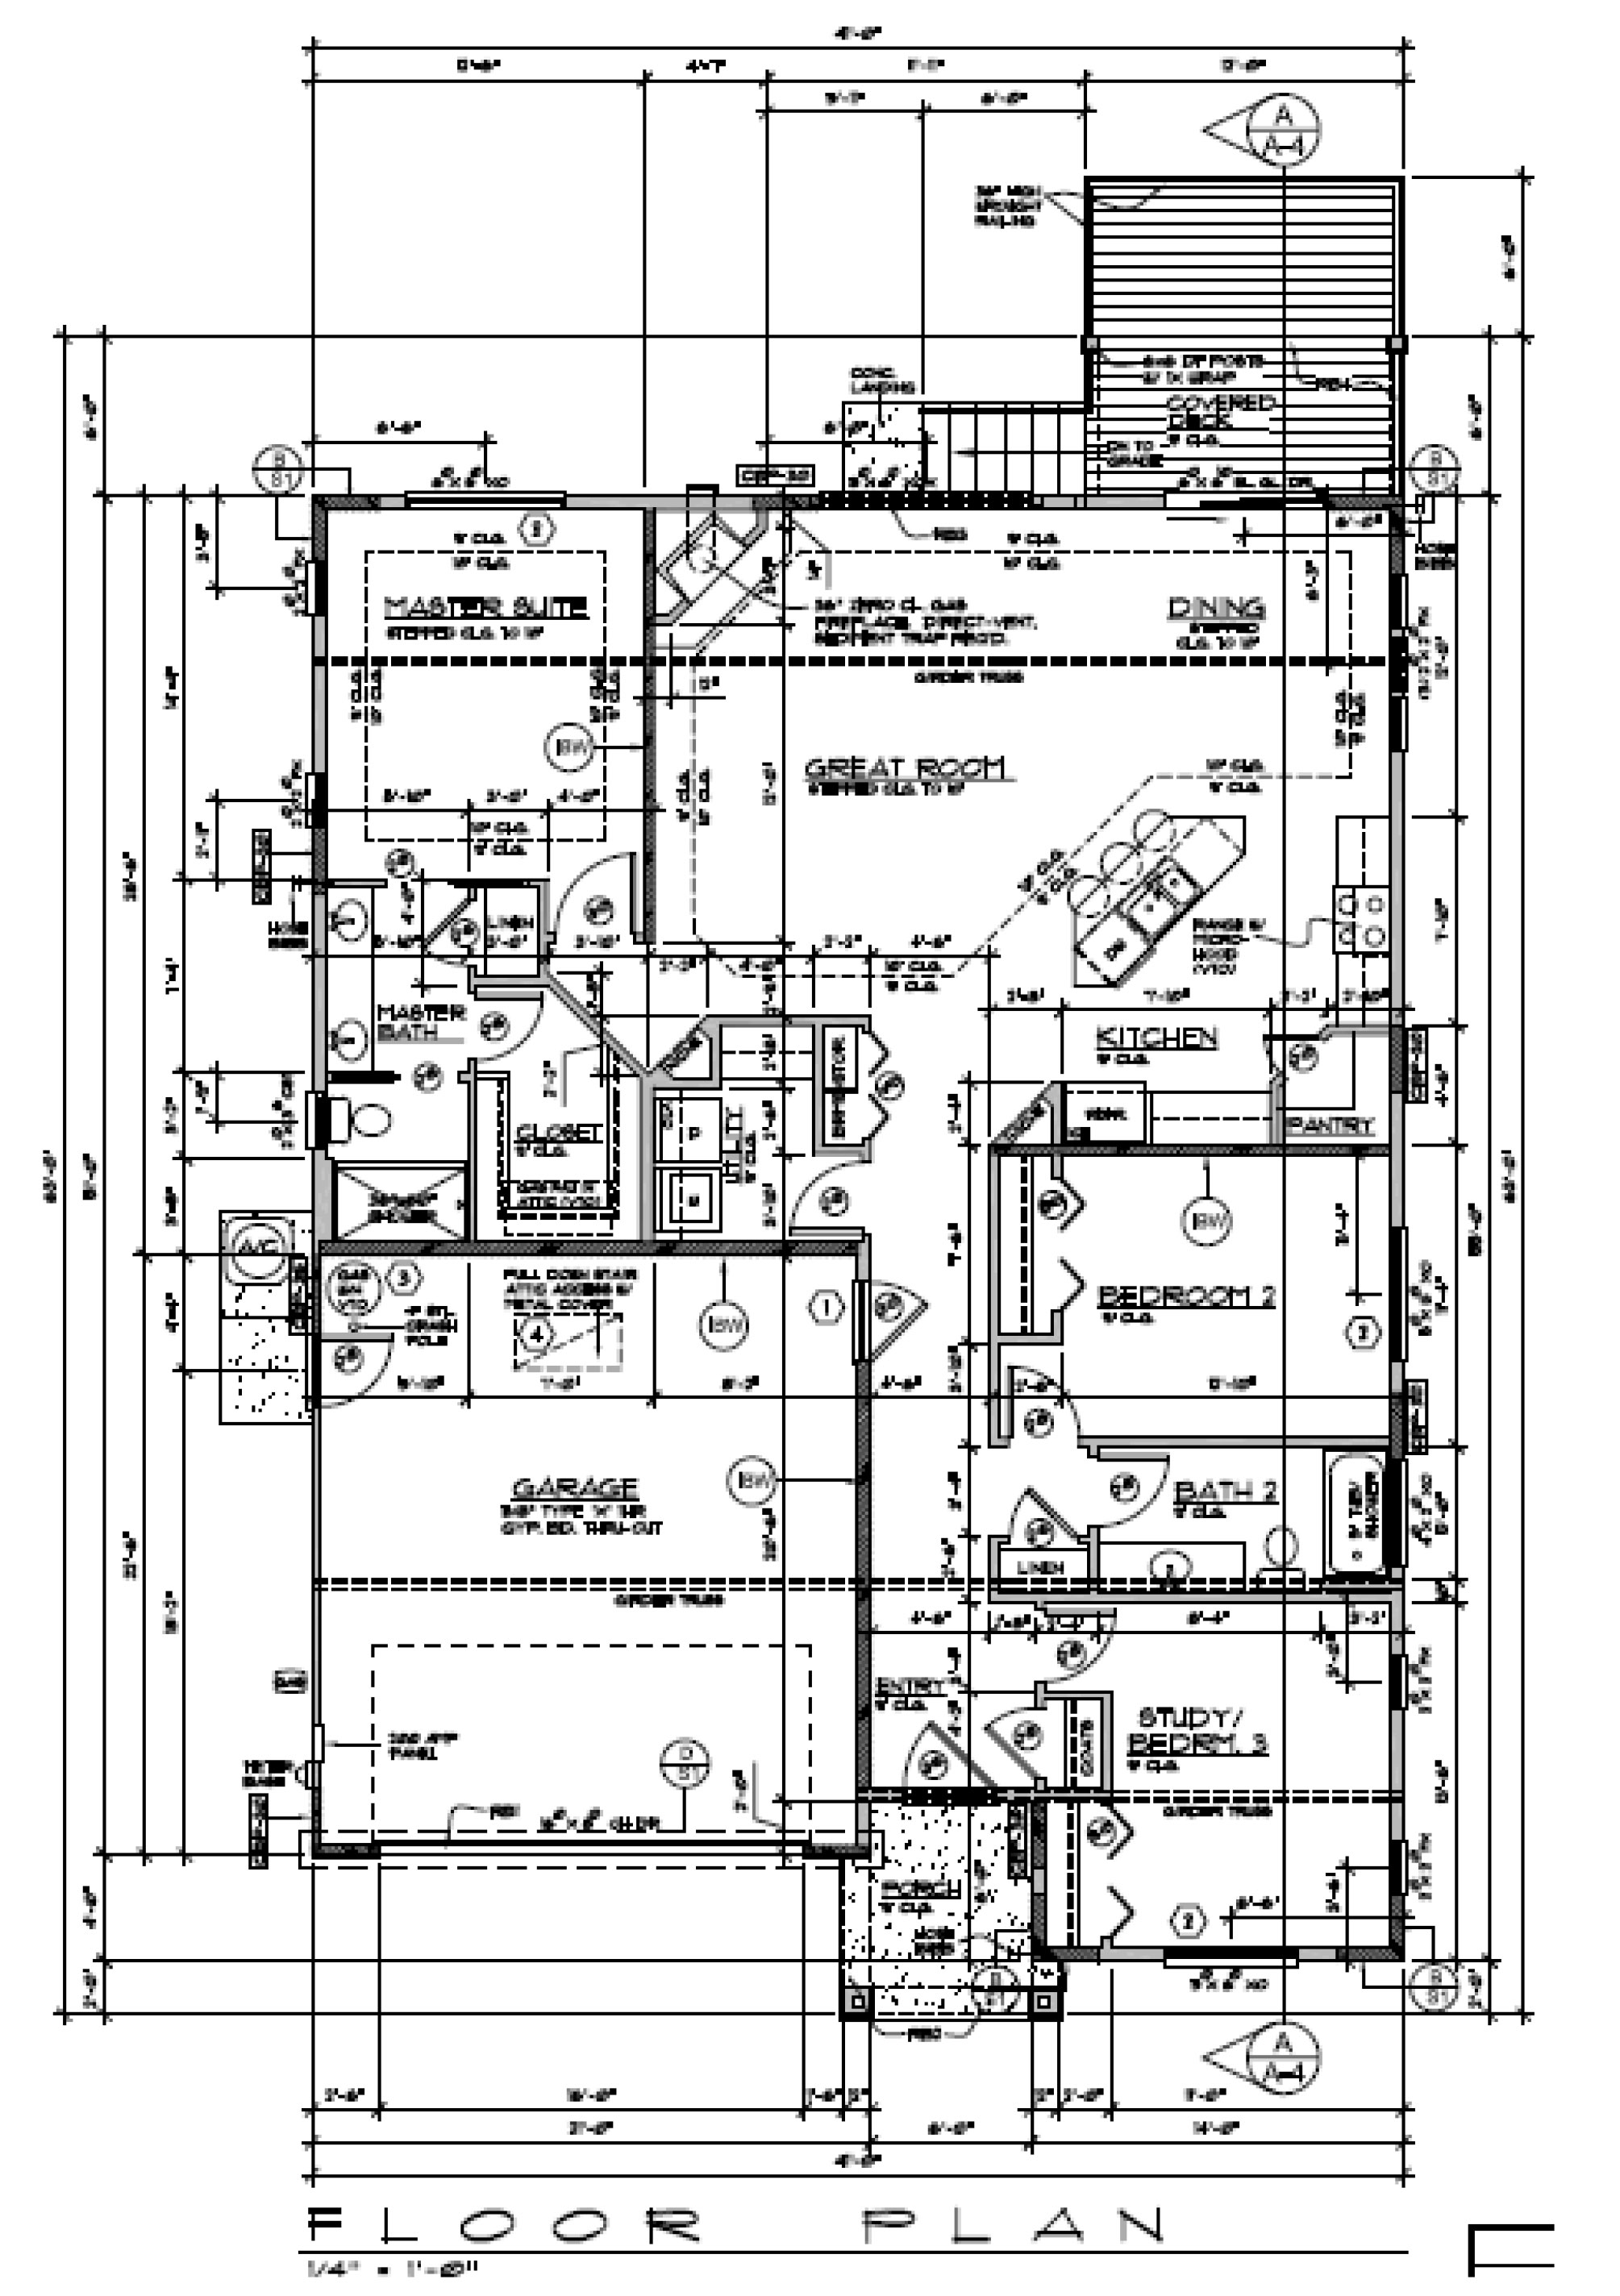 3862-Creek-Mont-Floor-Plan